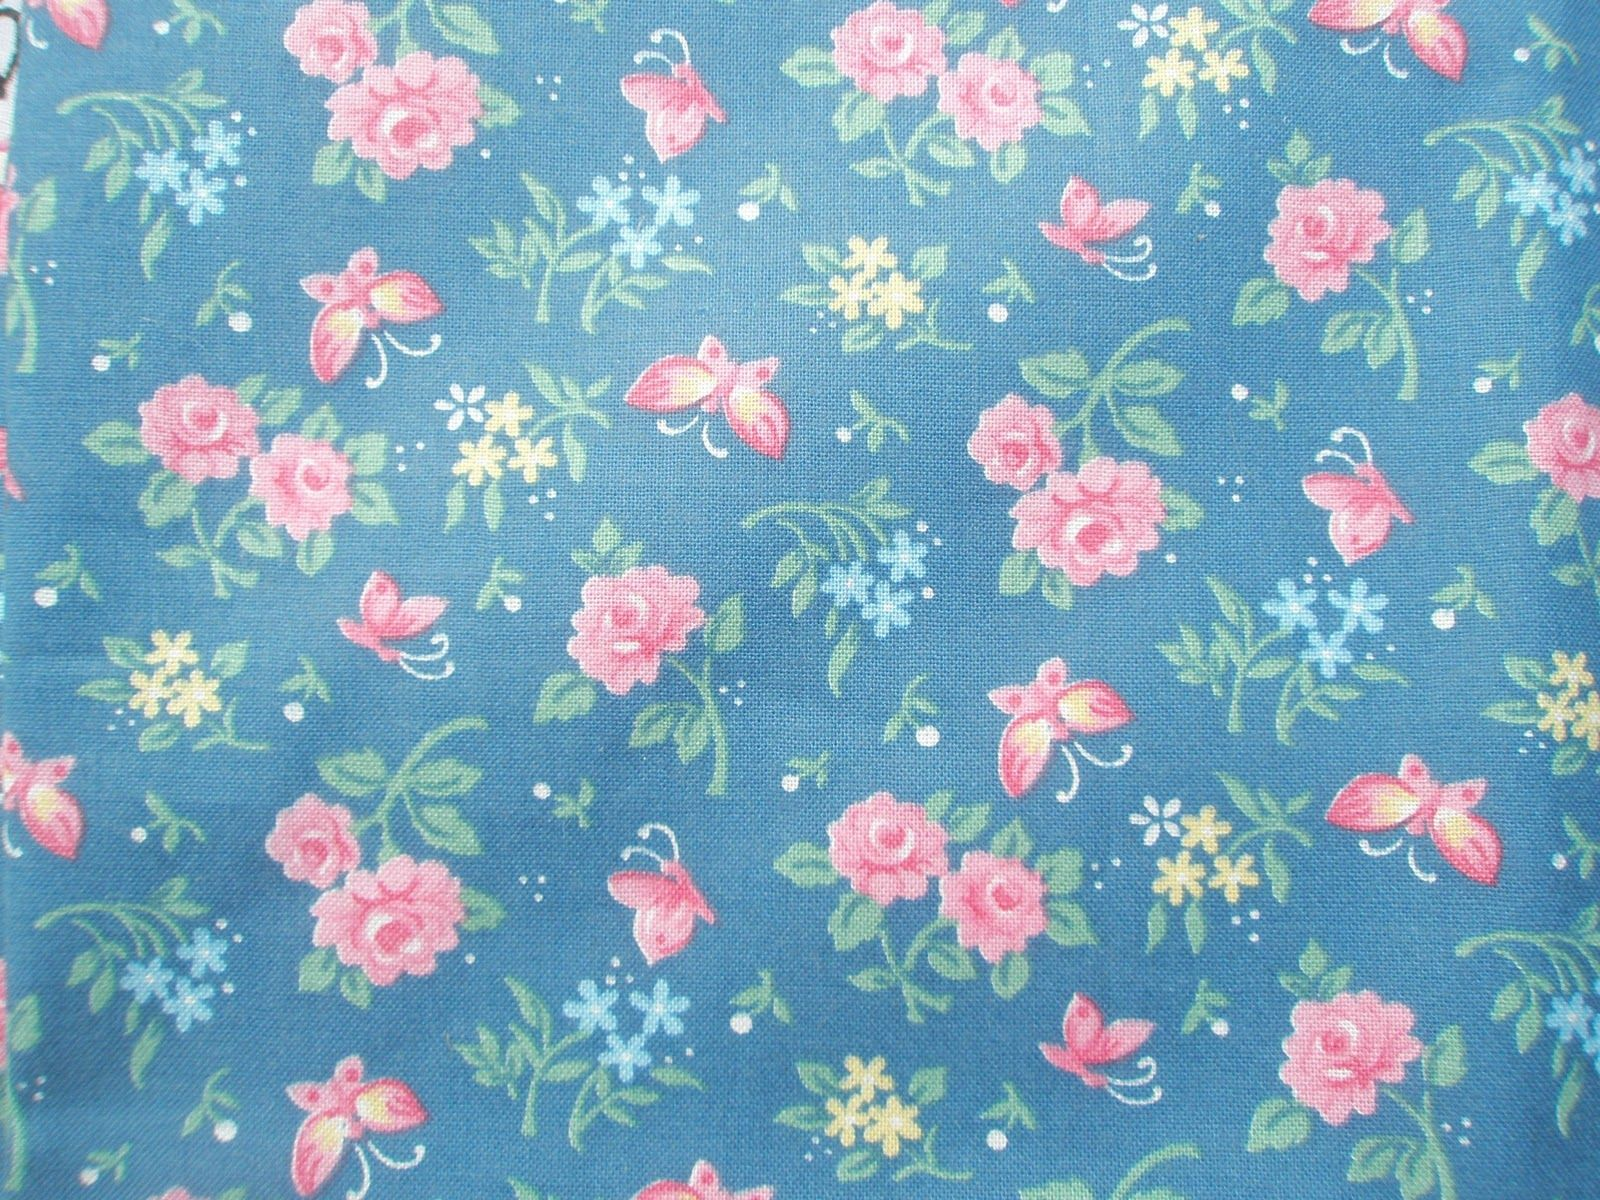 Vintage floral iphone wallpaper tumblr - Necessities Vintage Floral Retro Girly Background Patterns Wallpaper